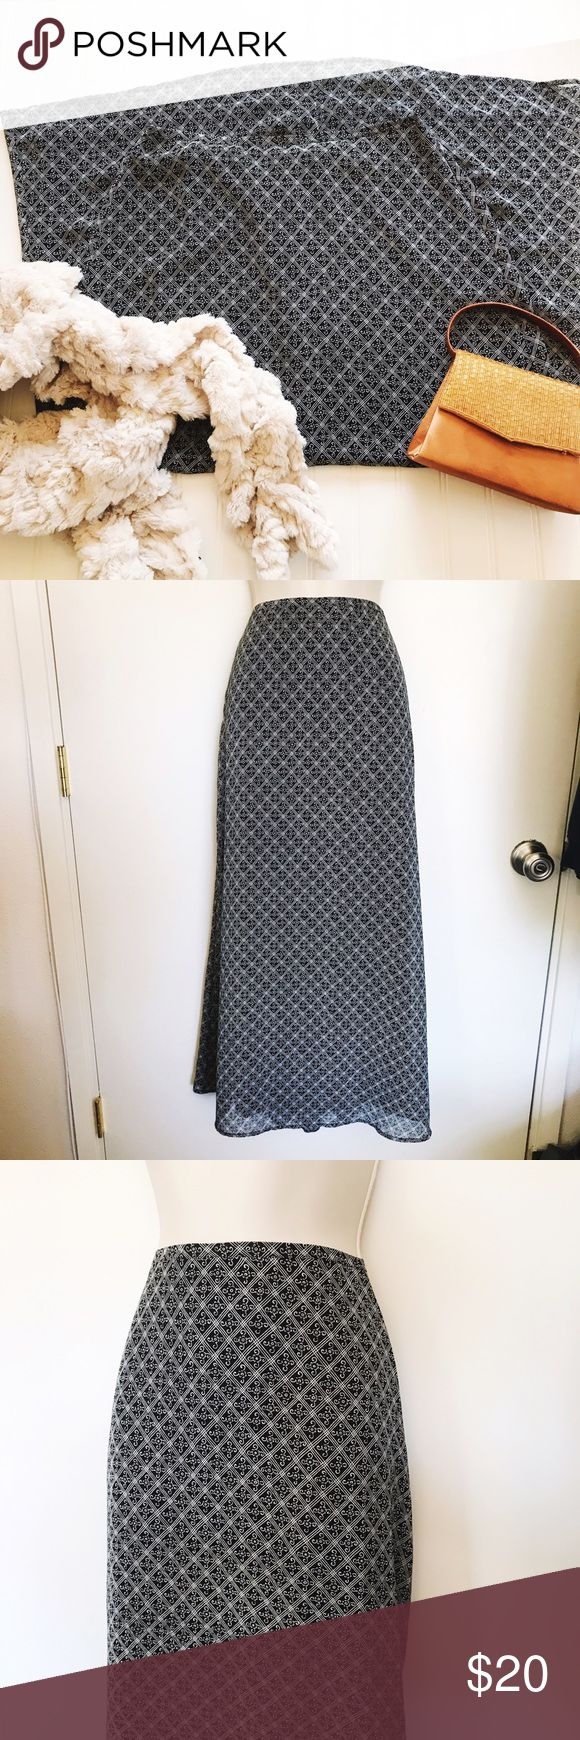 "Black And White Maxi Skirt Black And White Maxi Skirt  Feels like 100% Polyester   Waist 30"" Length 37"" Skirts Maxi"